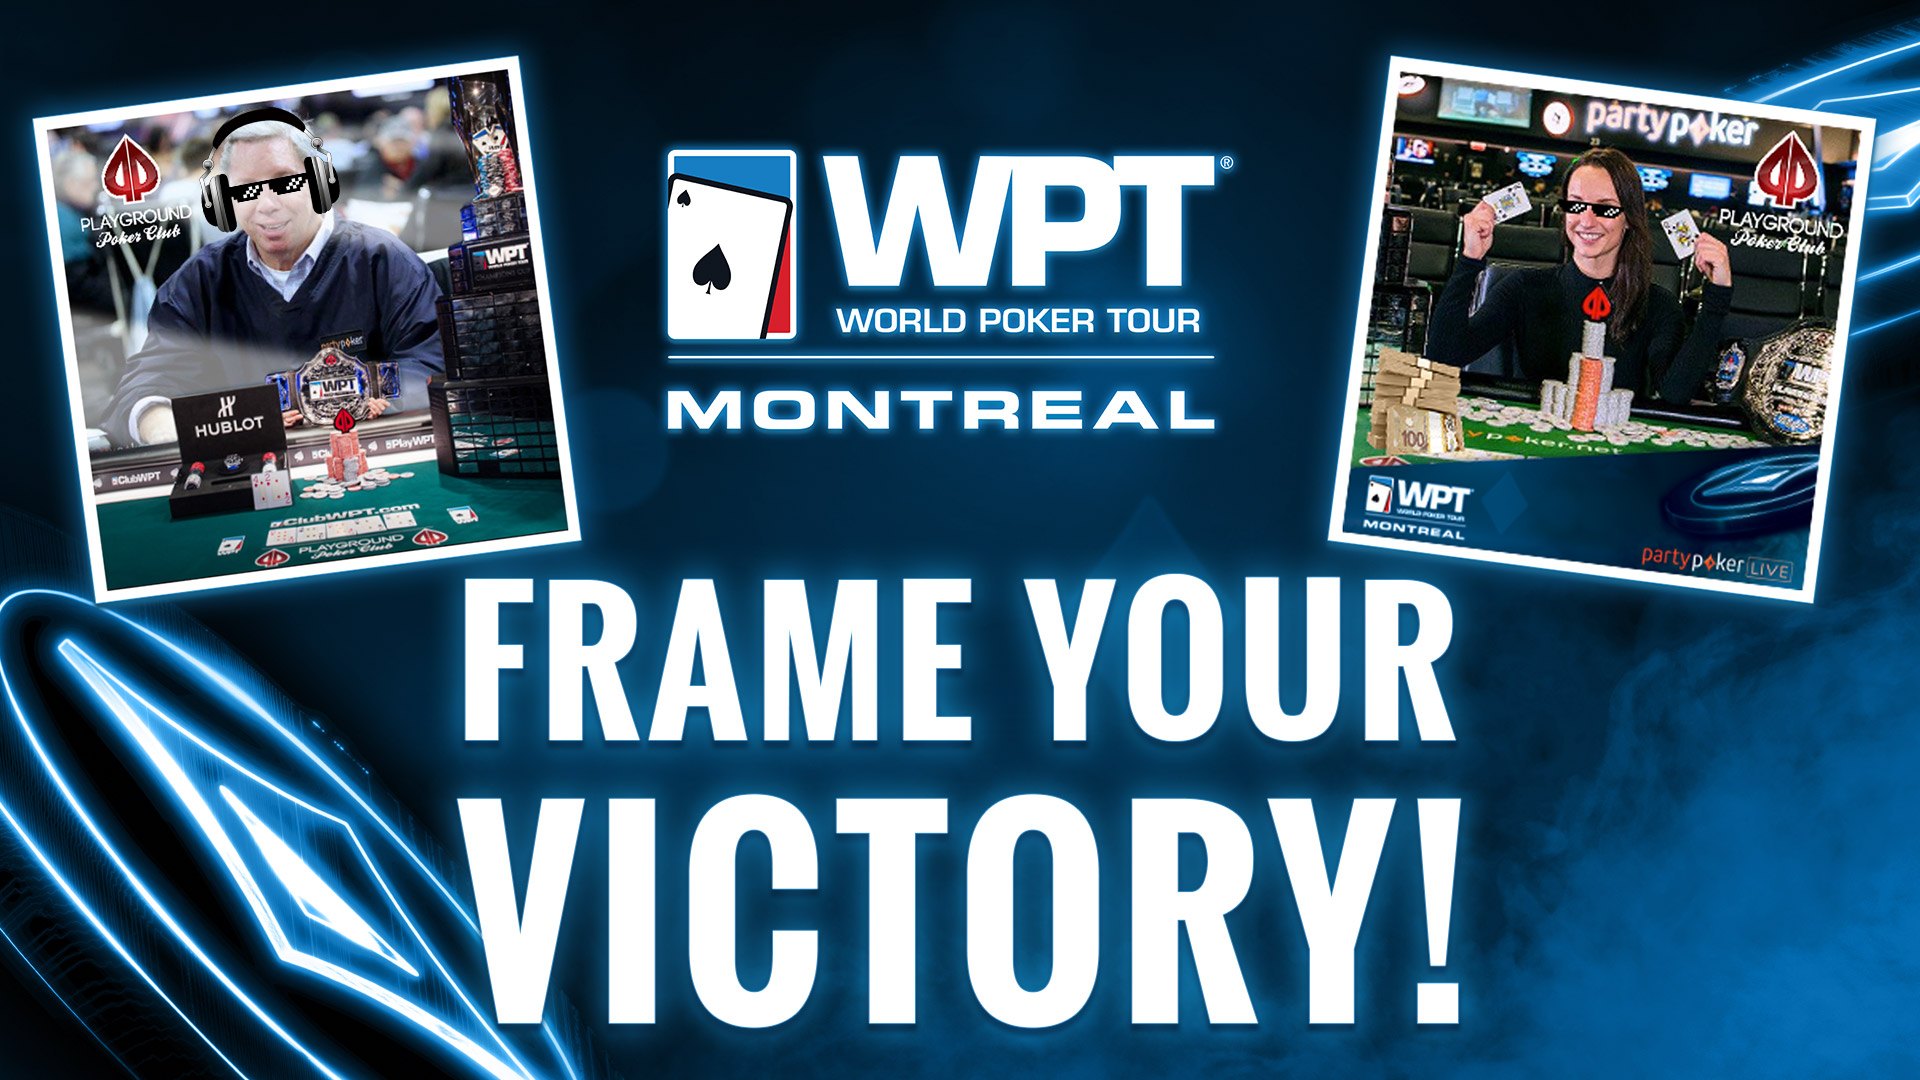 Frame your victory!